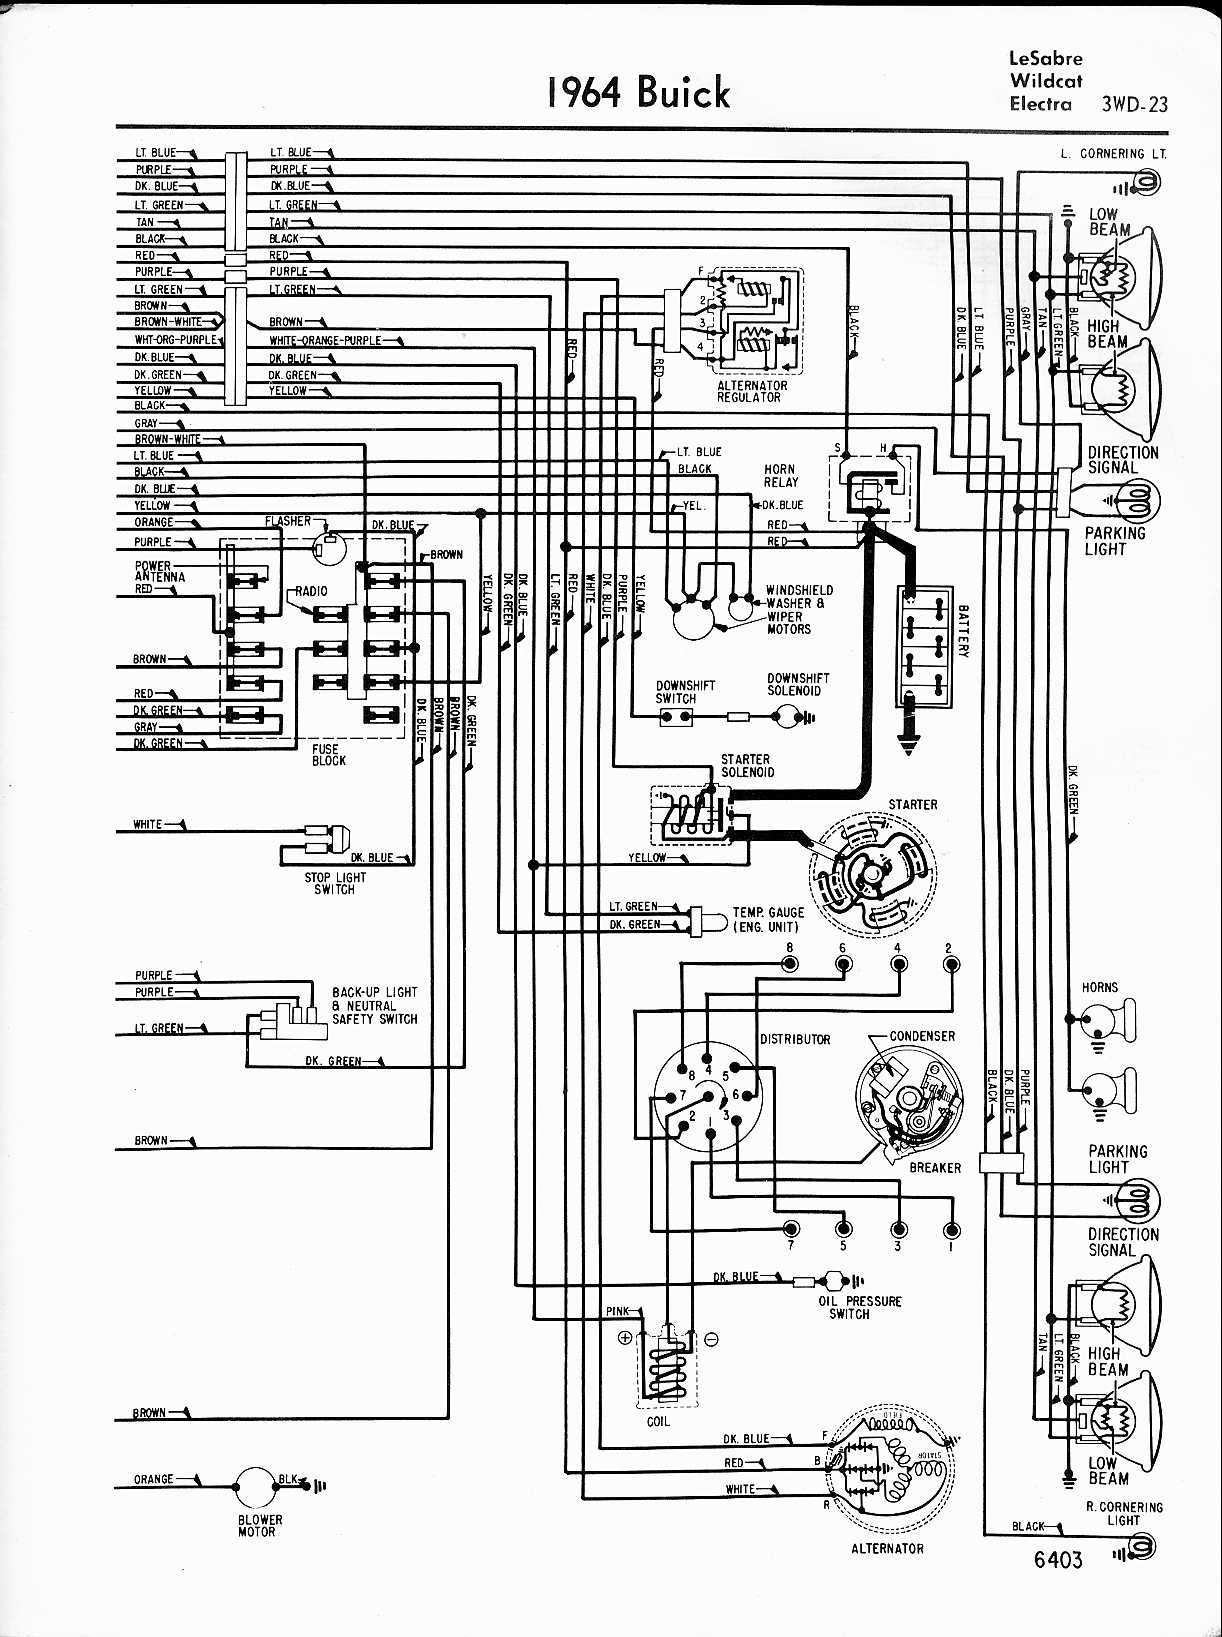 1964 Buick Skylark Fuse Box Diagram Wiring Schematic 1966 C10 Chevy Truck Diagrams On 1967 Rh Lolinewr Today Brochure 1991